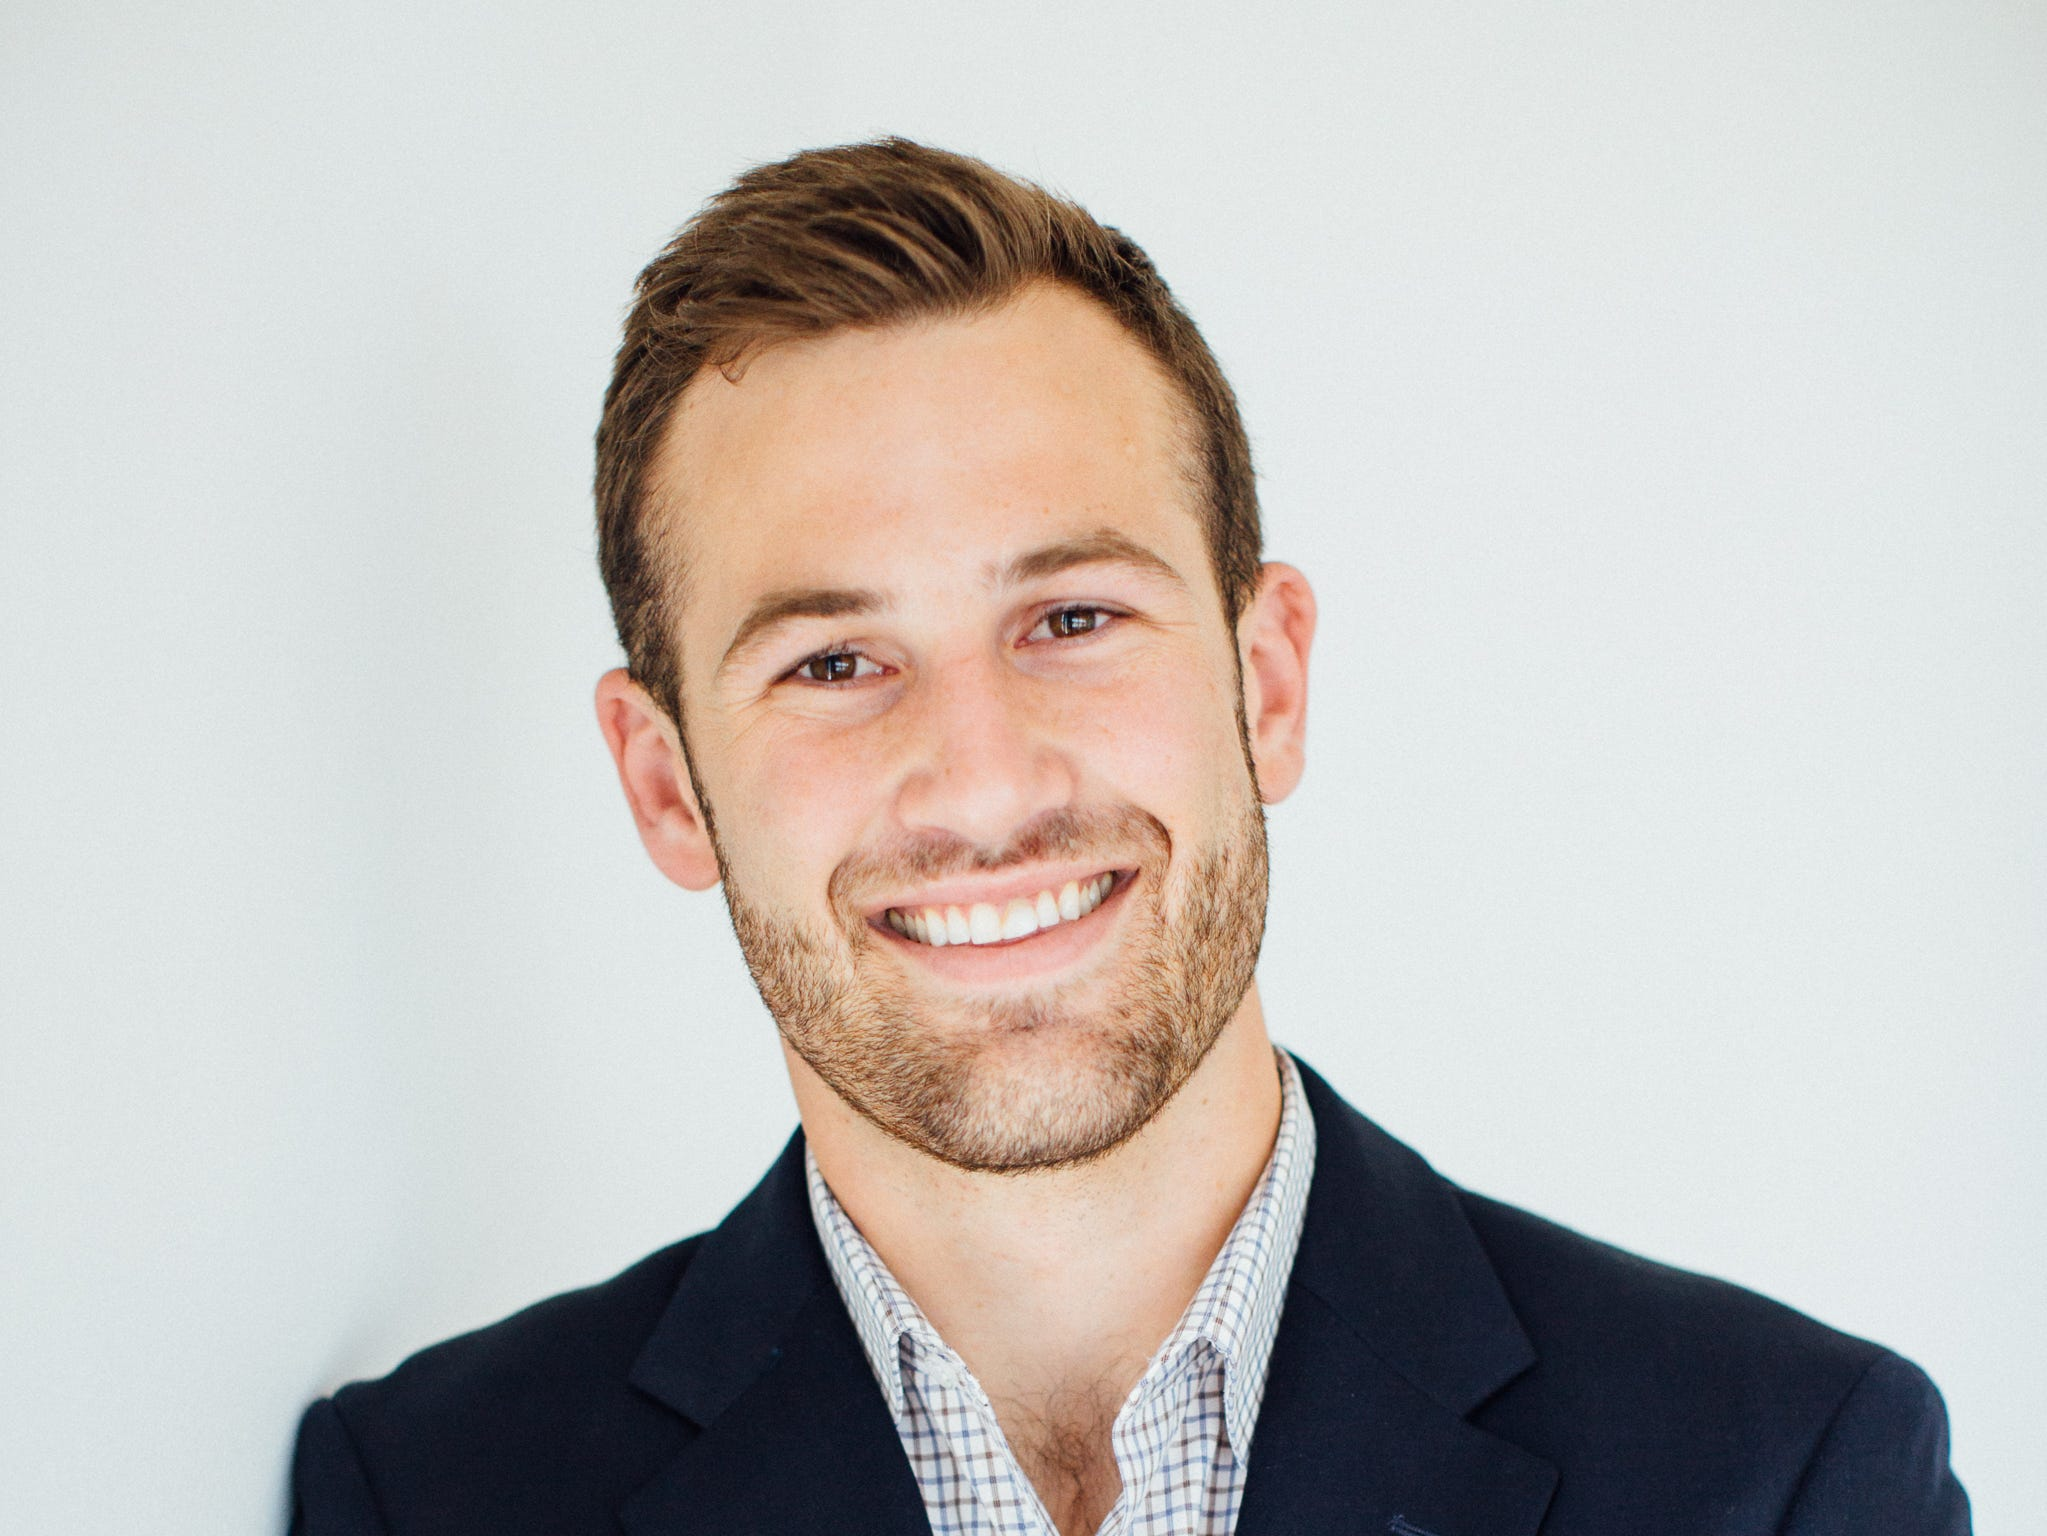 Bailey & Co. affiliate broker, Zach Sale, received the coveted Rising Star award from the Knoxville Association of Realtors. He is one of nine realtors to ever receive the honor.